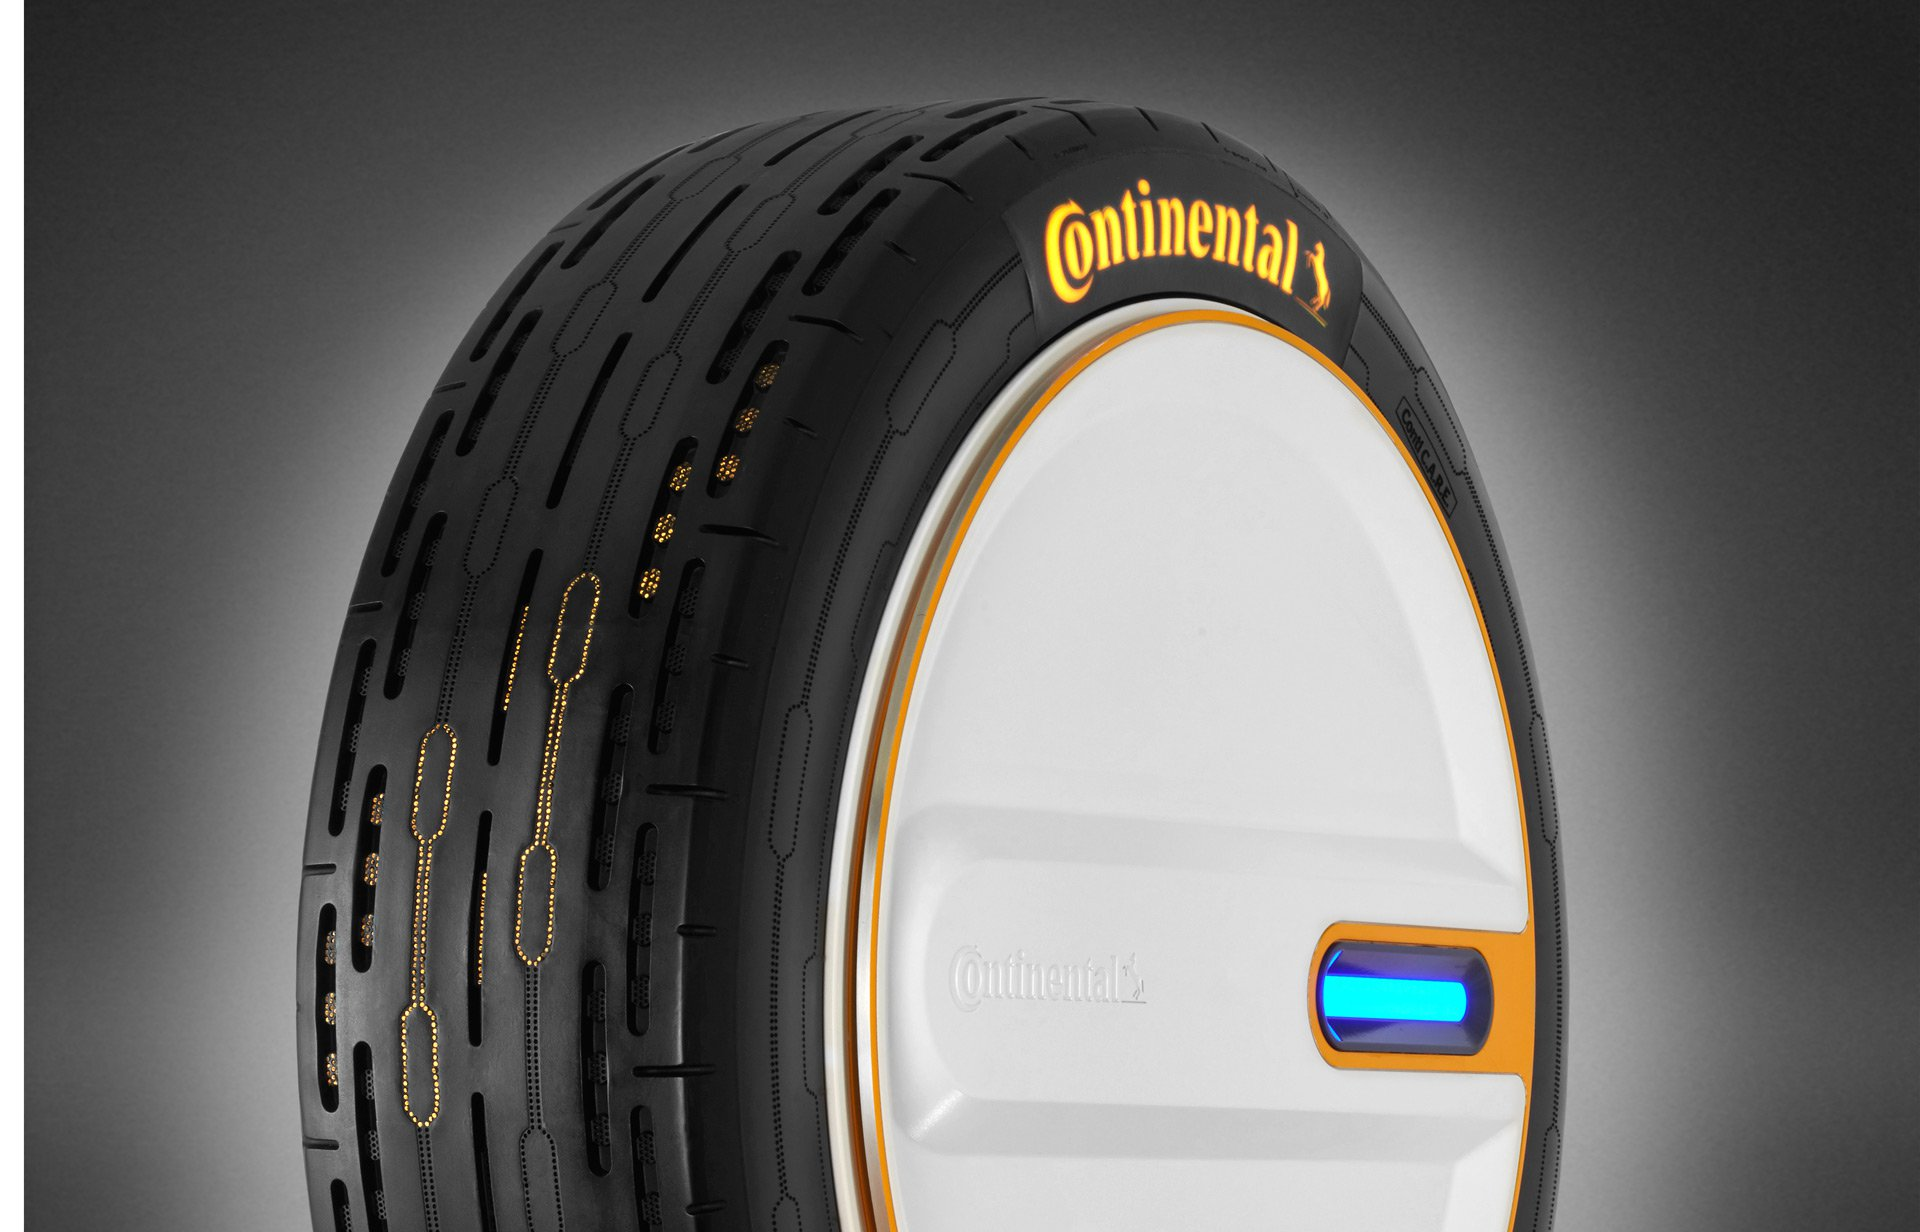 Continental-CARE-tire-technology-2